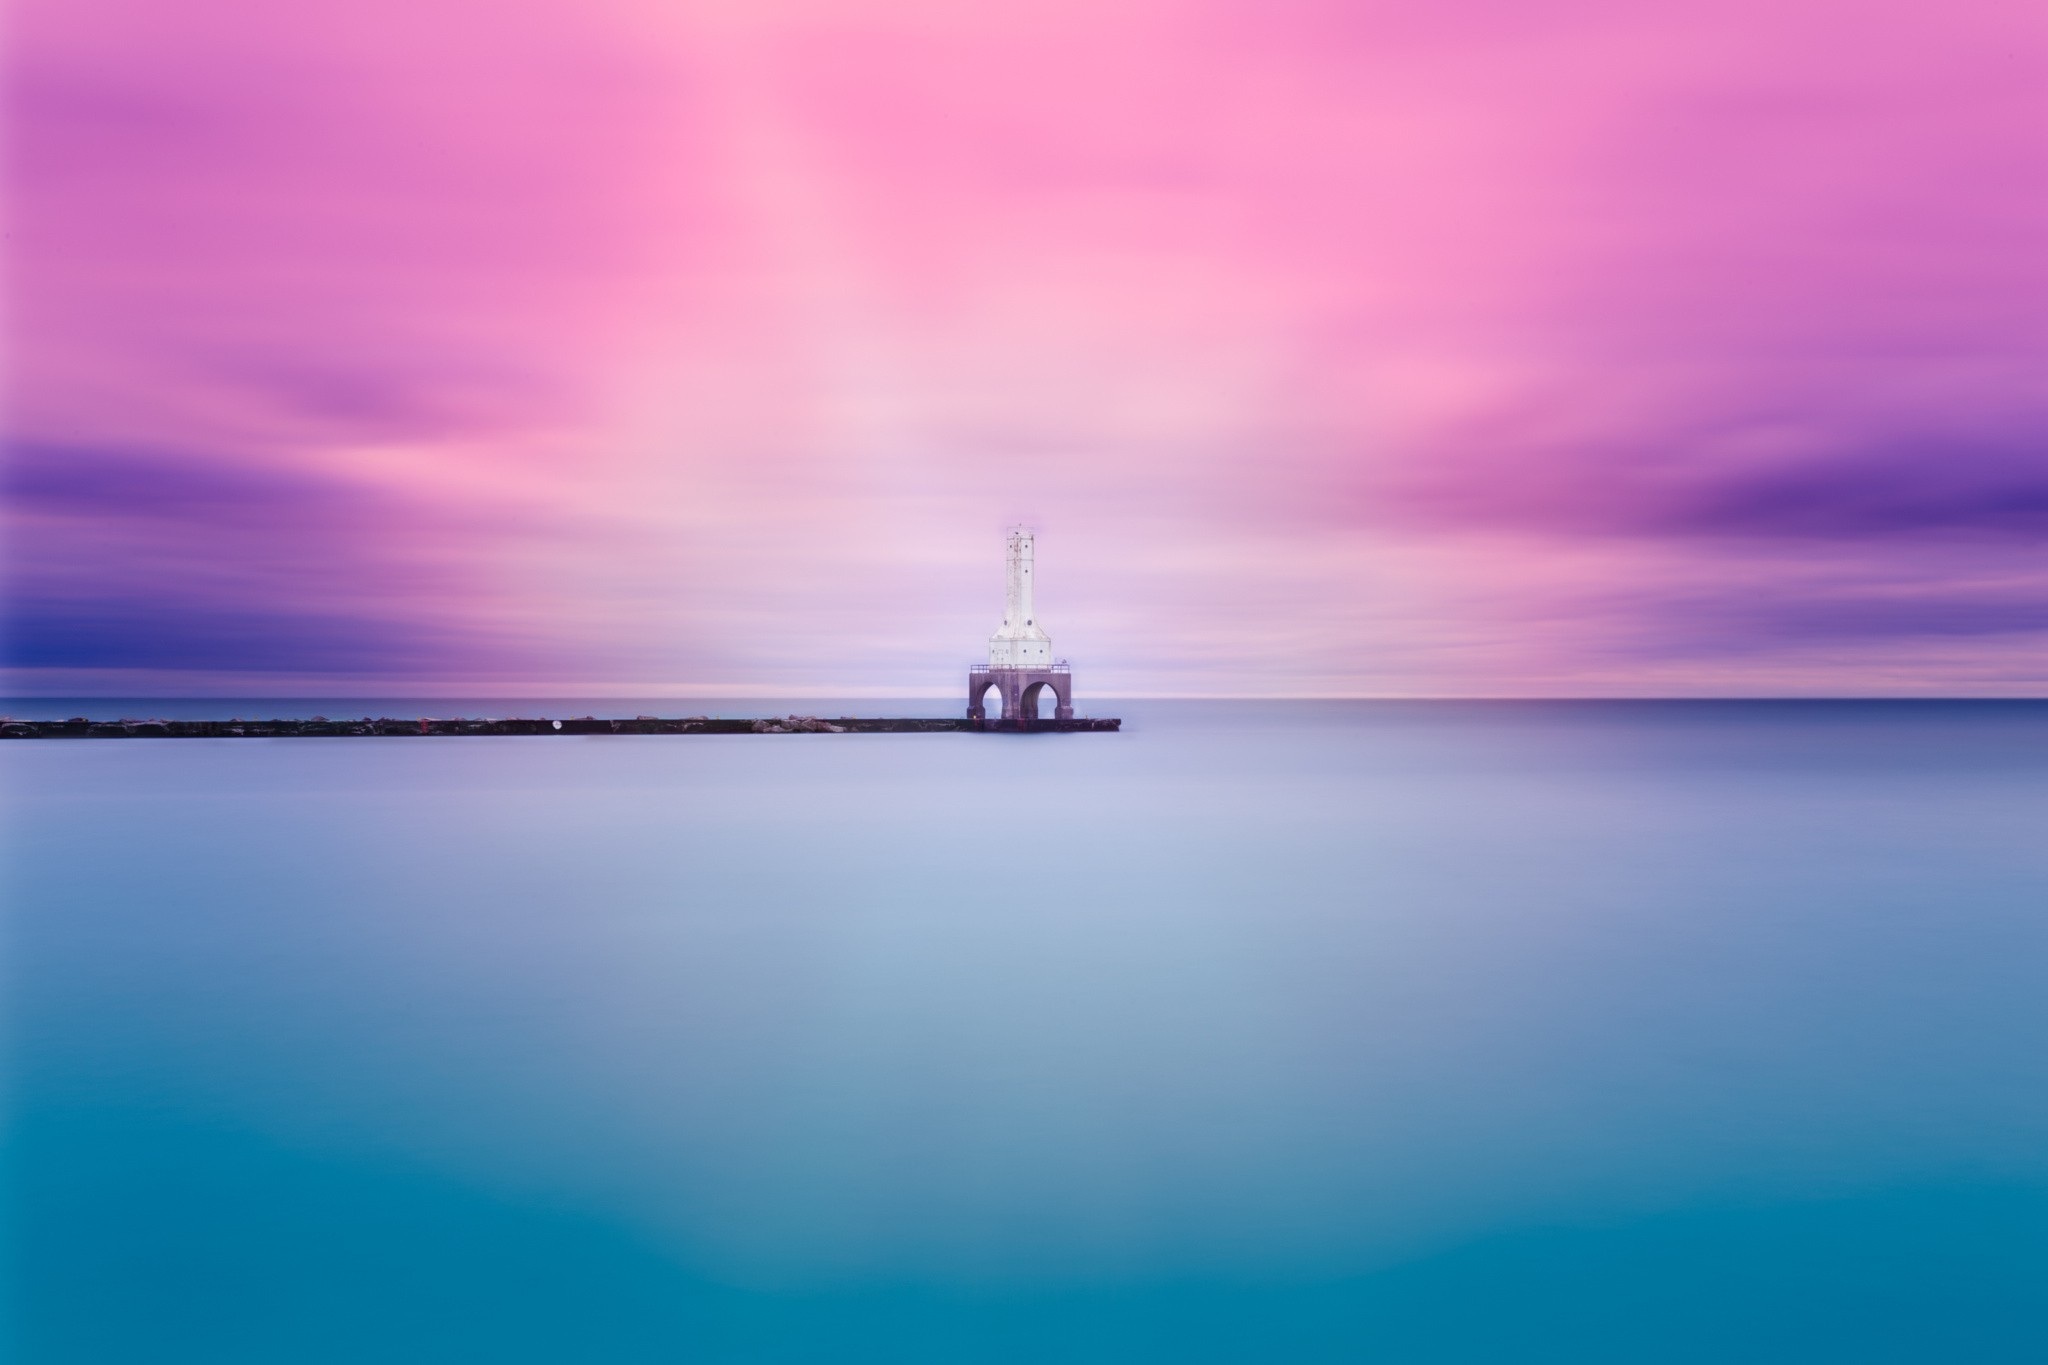 The Blue Water And Pink Sky